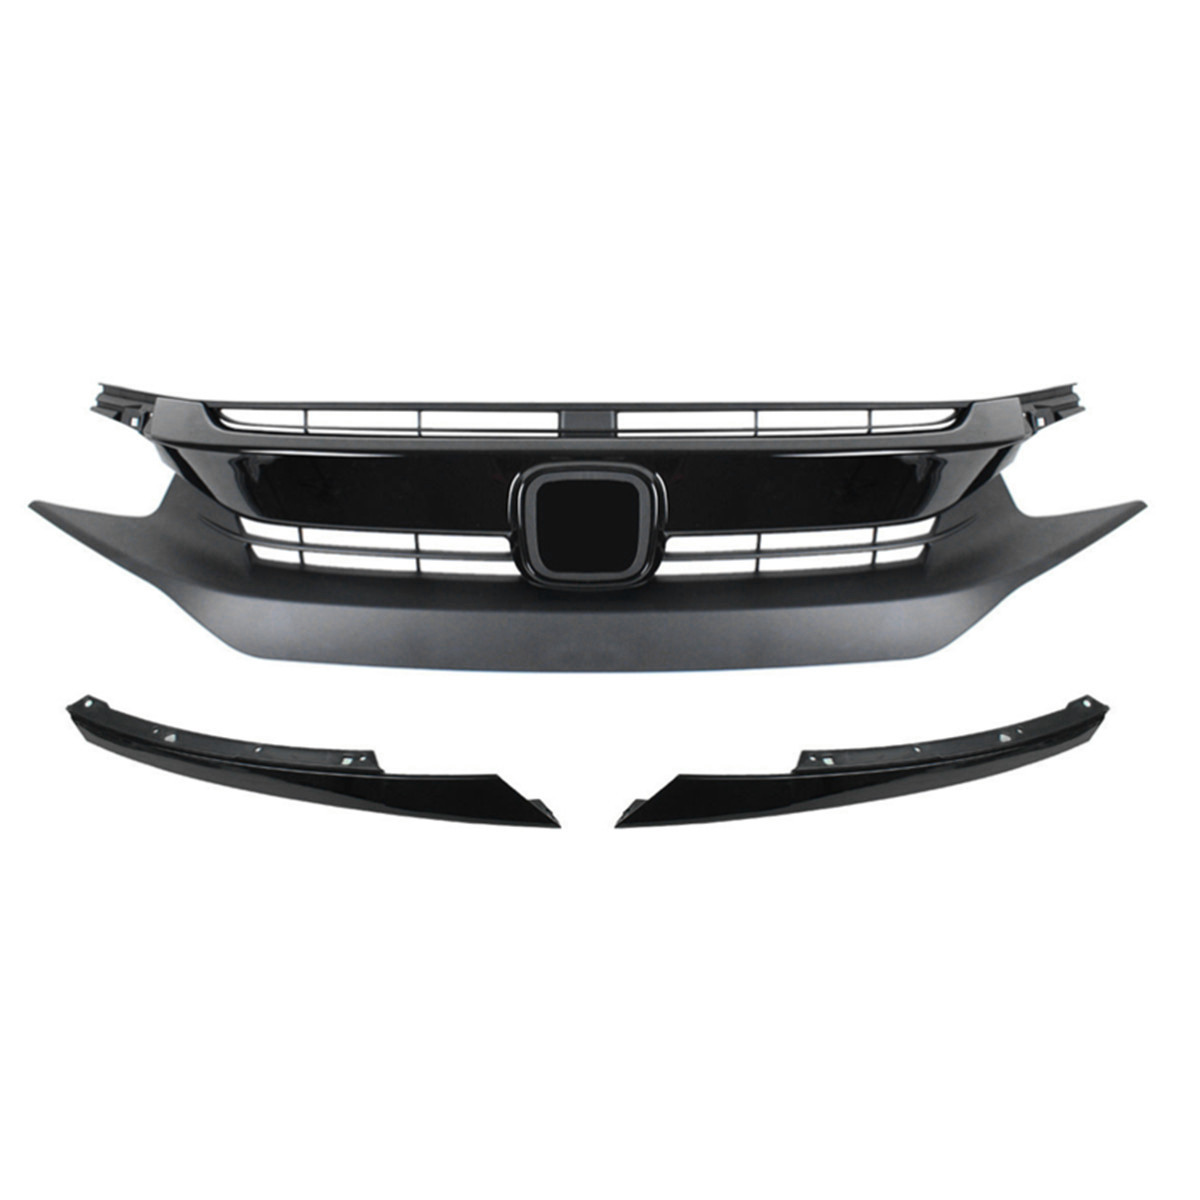 1Set Car Front Hood Grille Grill&Headlight Eye Lid for Civic 10th 2016-2017 Gen Plastic Black JDM RS Style Hatchback Si Type-R